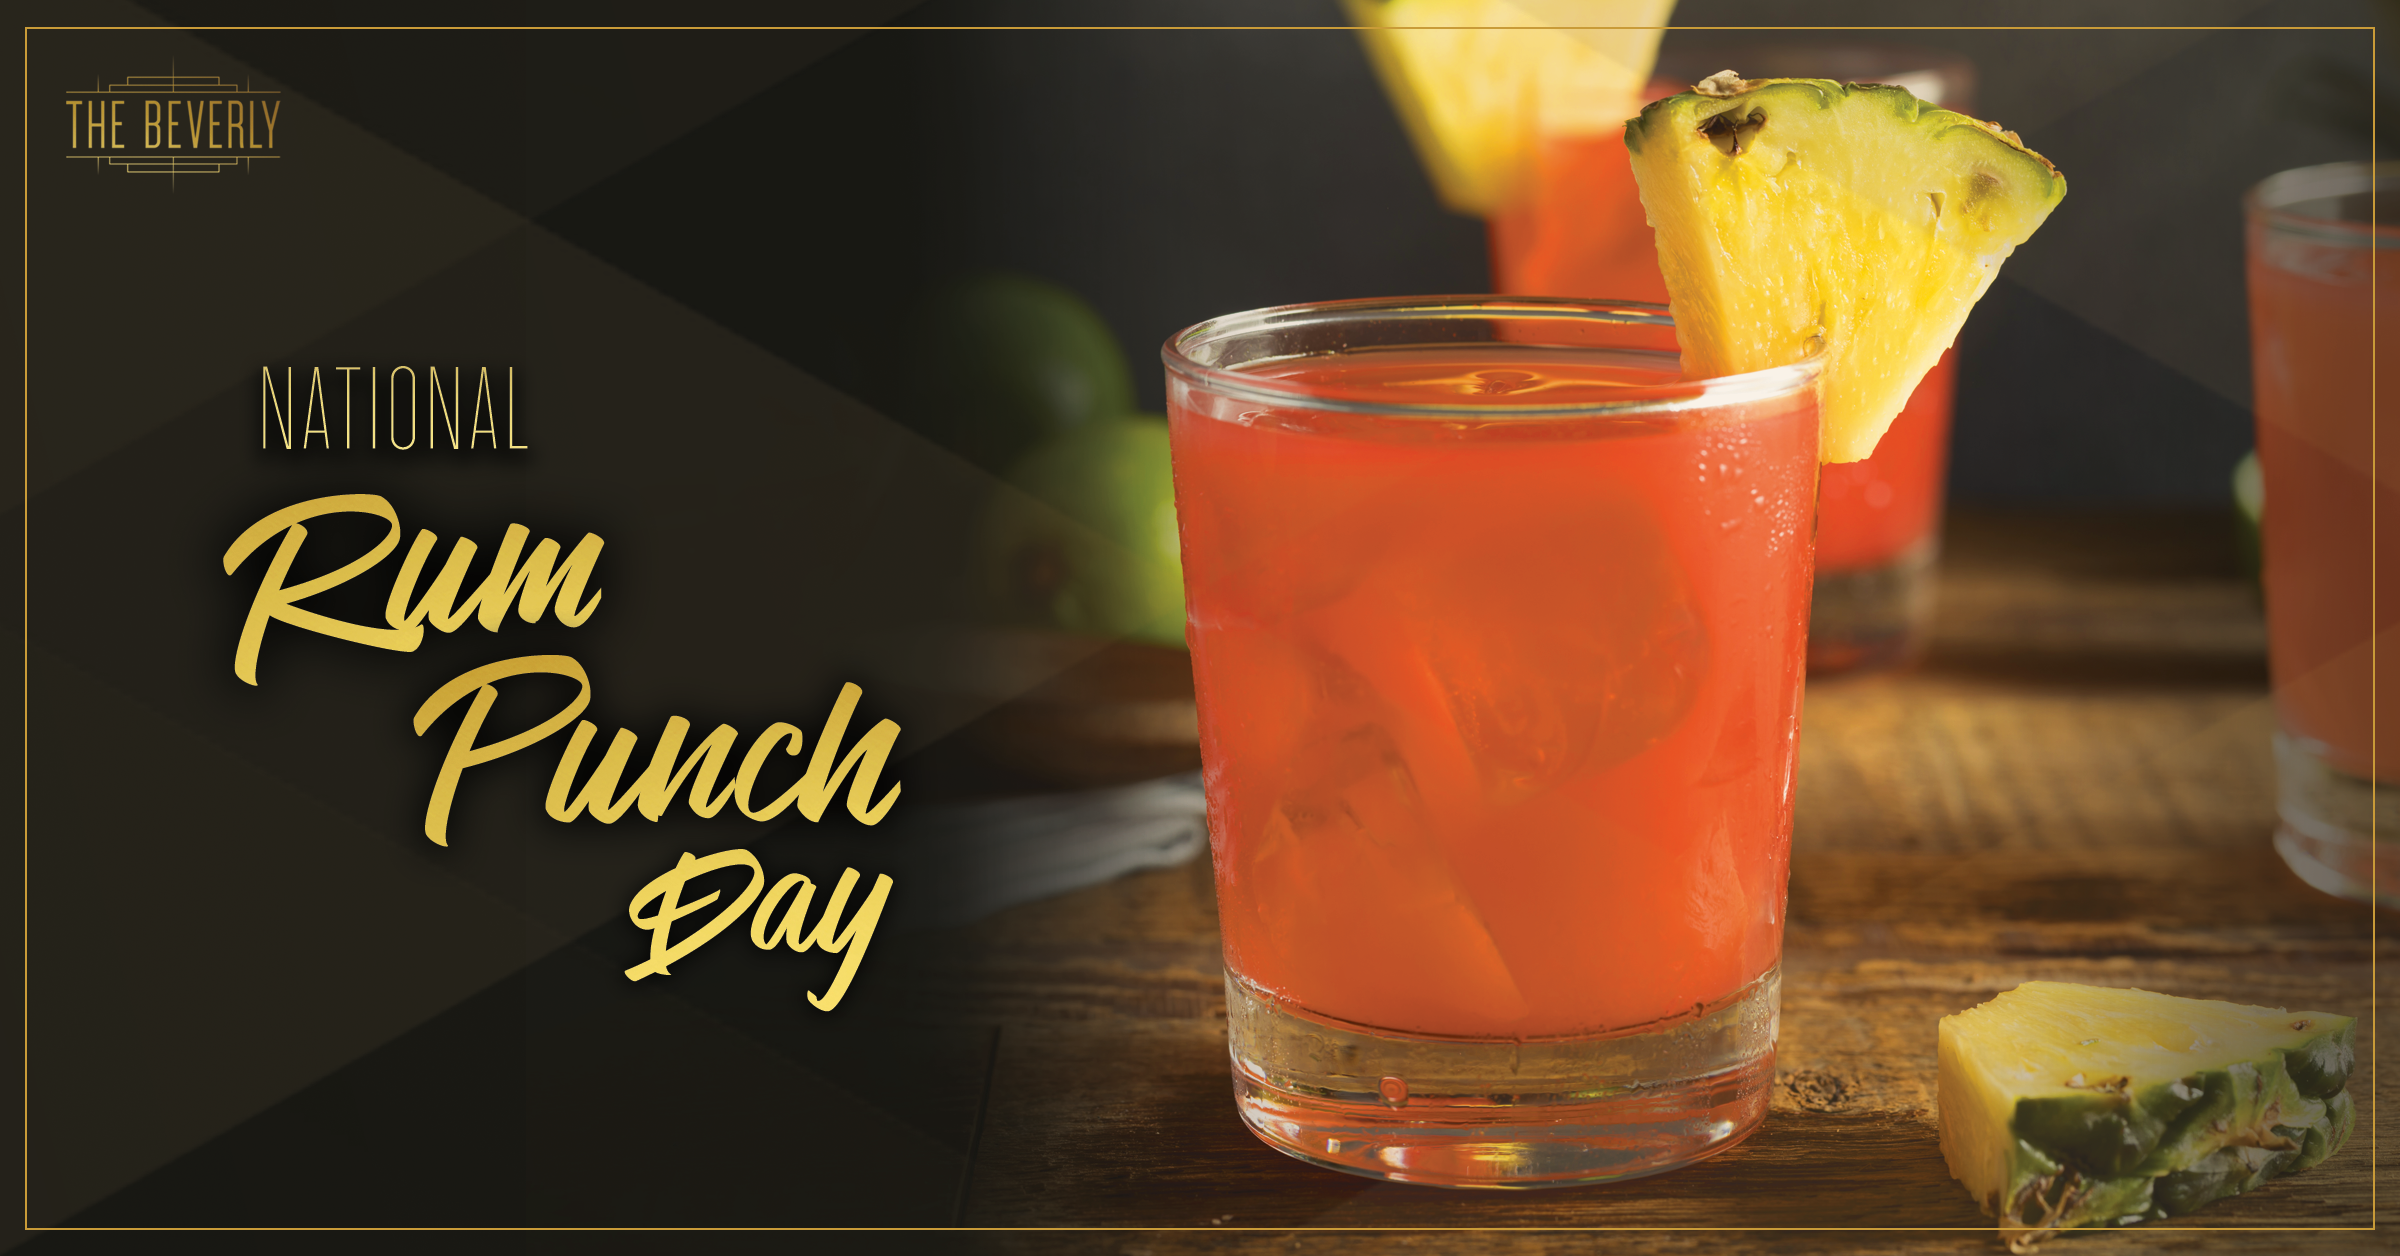 Rum punch day fb